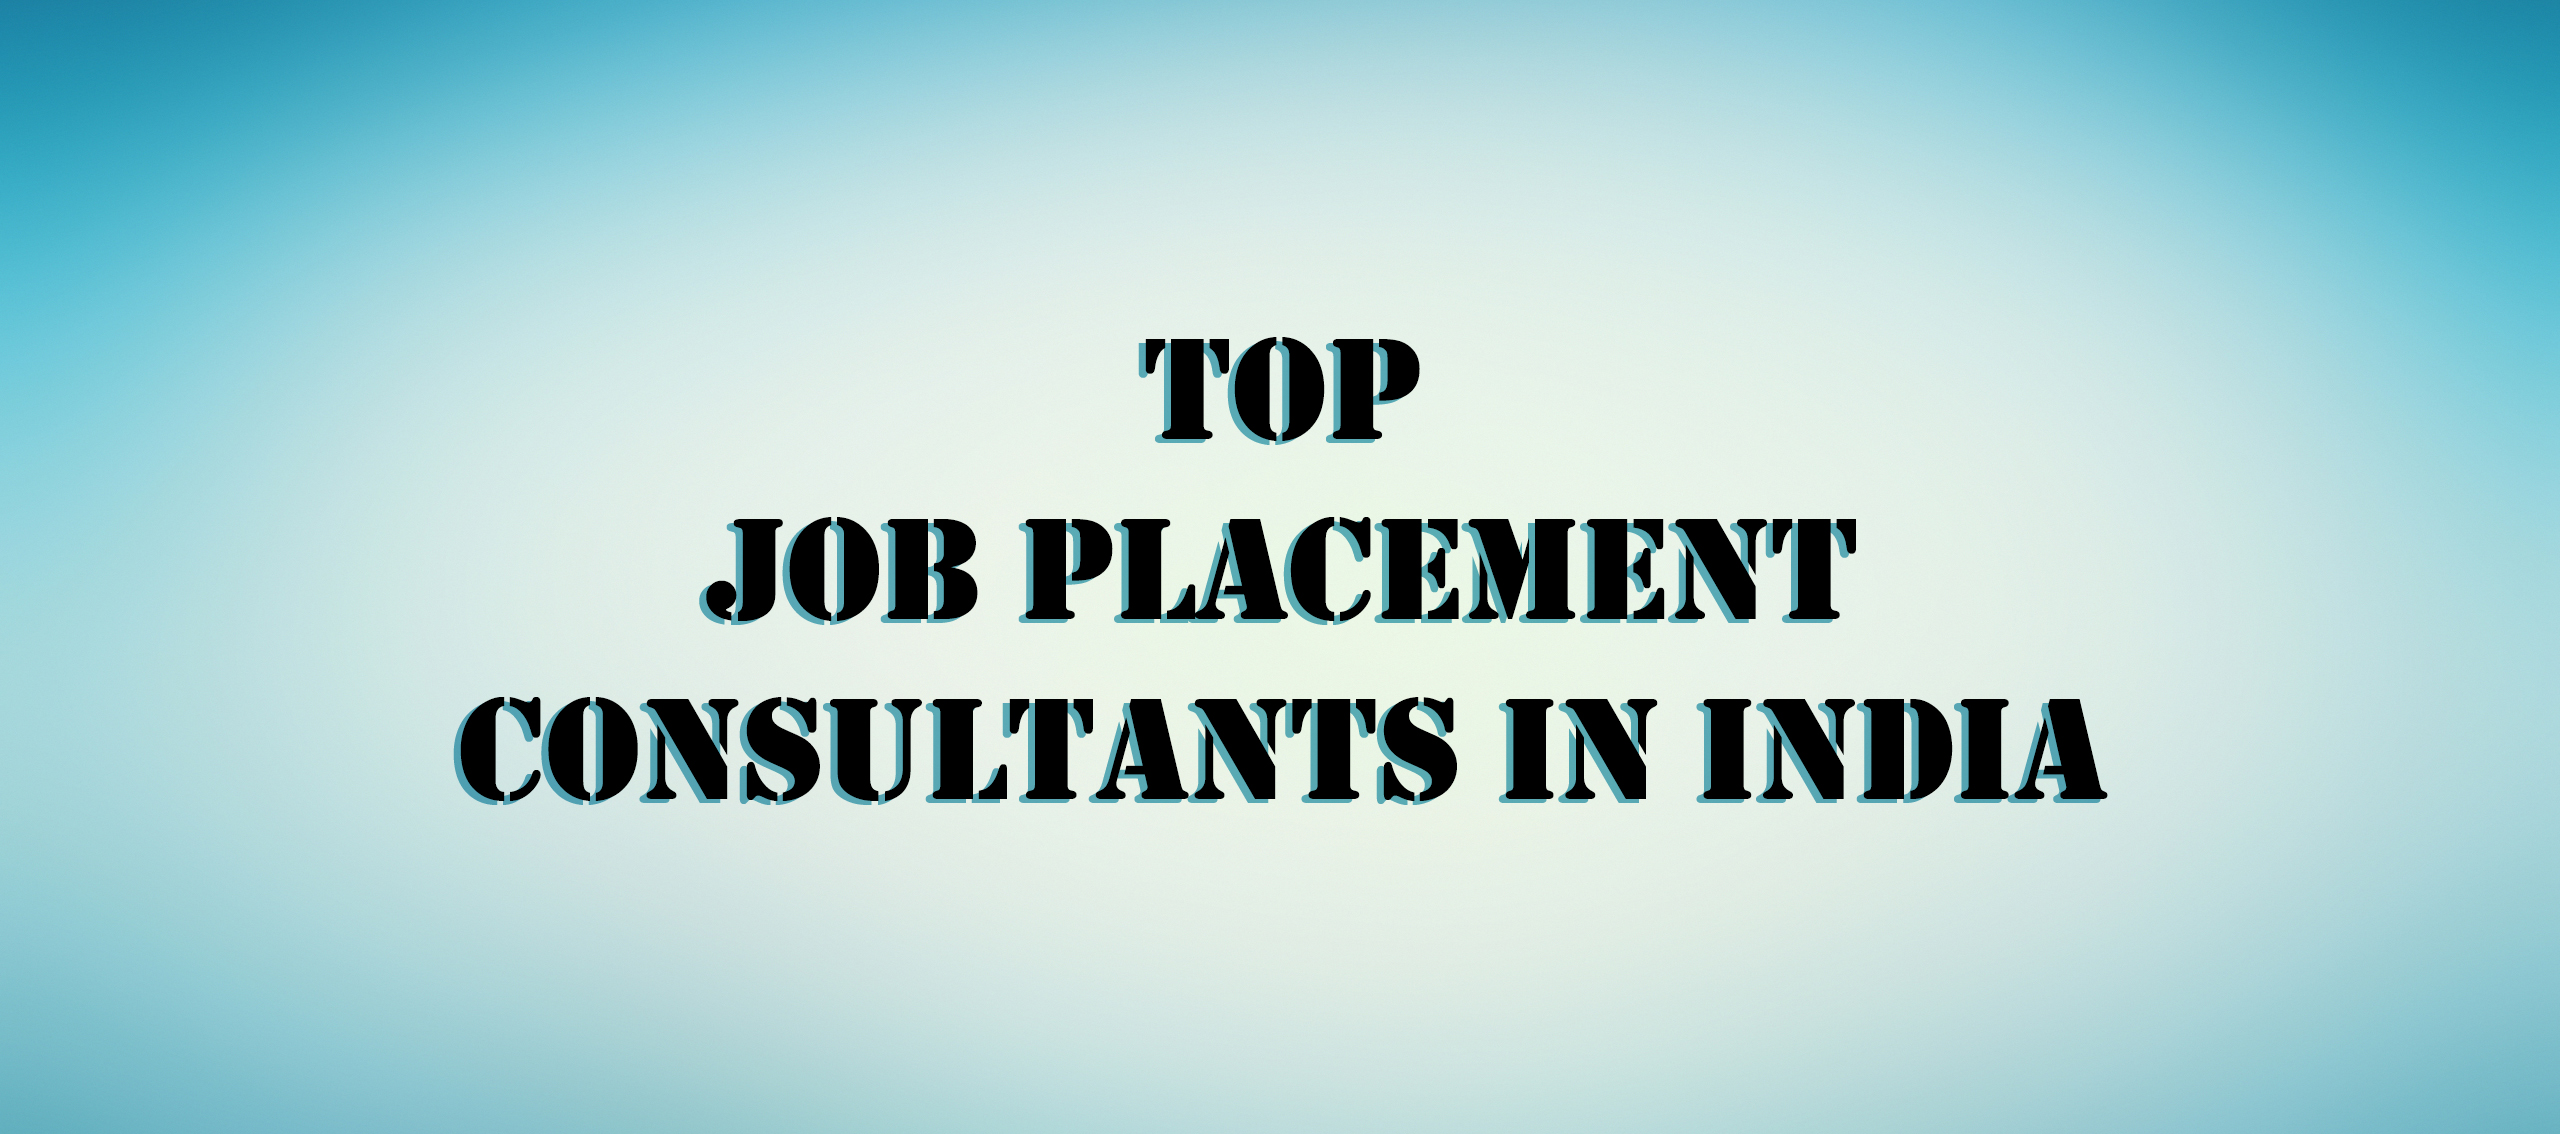 Top Job Placement Consultants in India